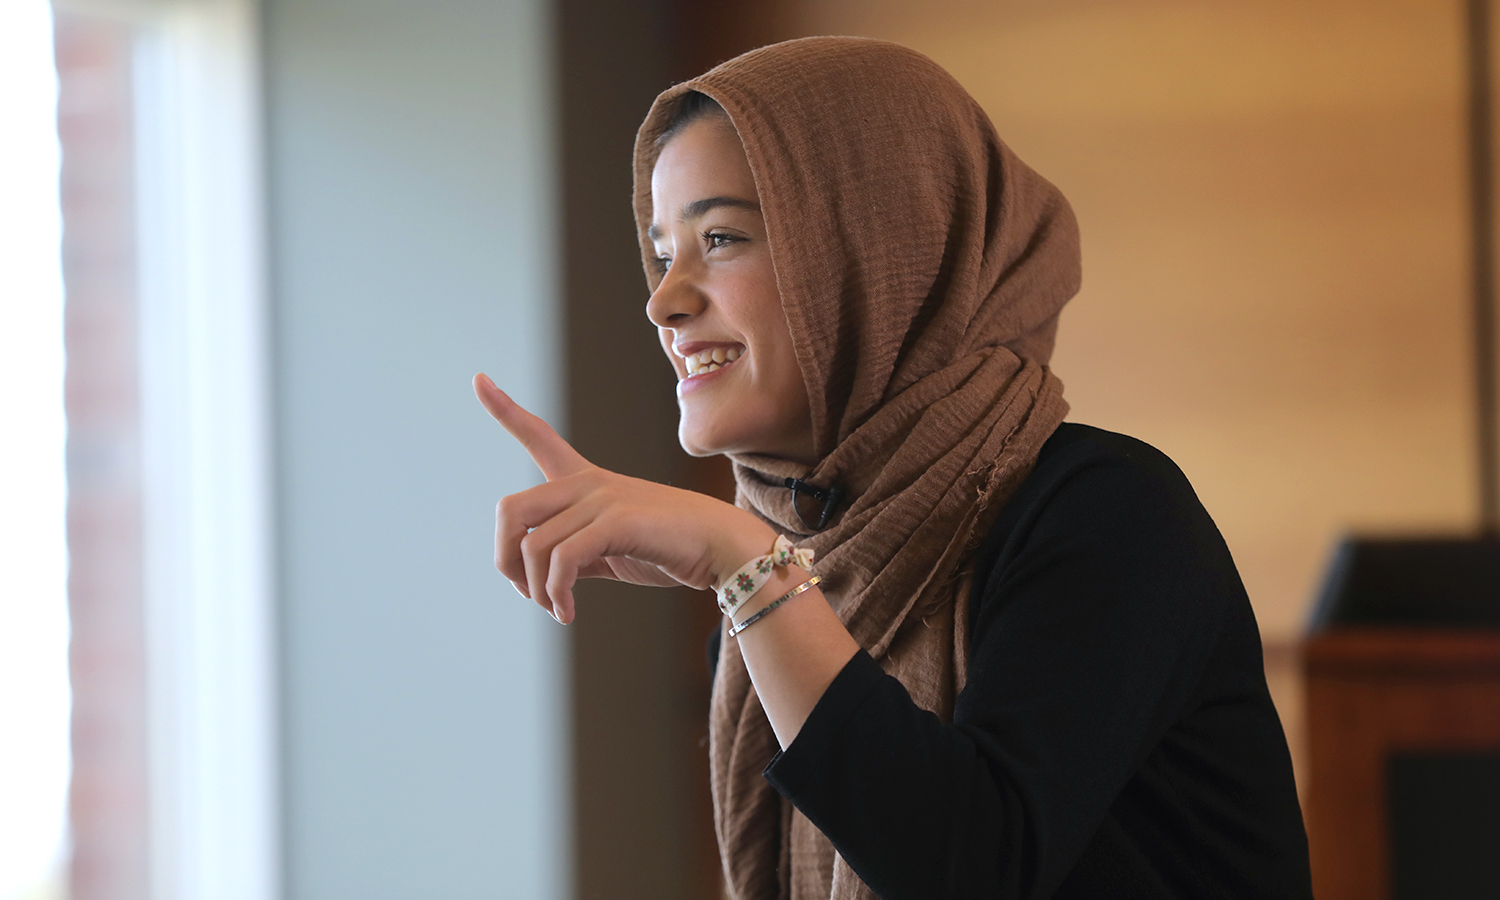 In April, Zahra Arabzada '19 was interviewed by Health Magazine for its #RealLifeStrong campaign. The piece focuses on Zahra's experience running in an ultramarathon and her advocacy work for women in Afghanistan. The article will run on Health.com this summer.